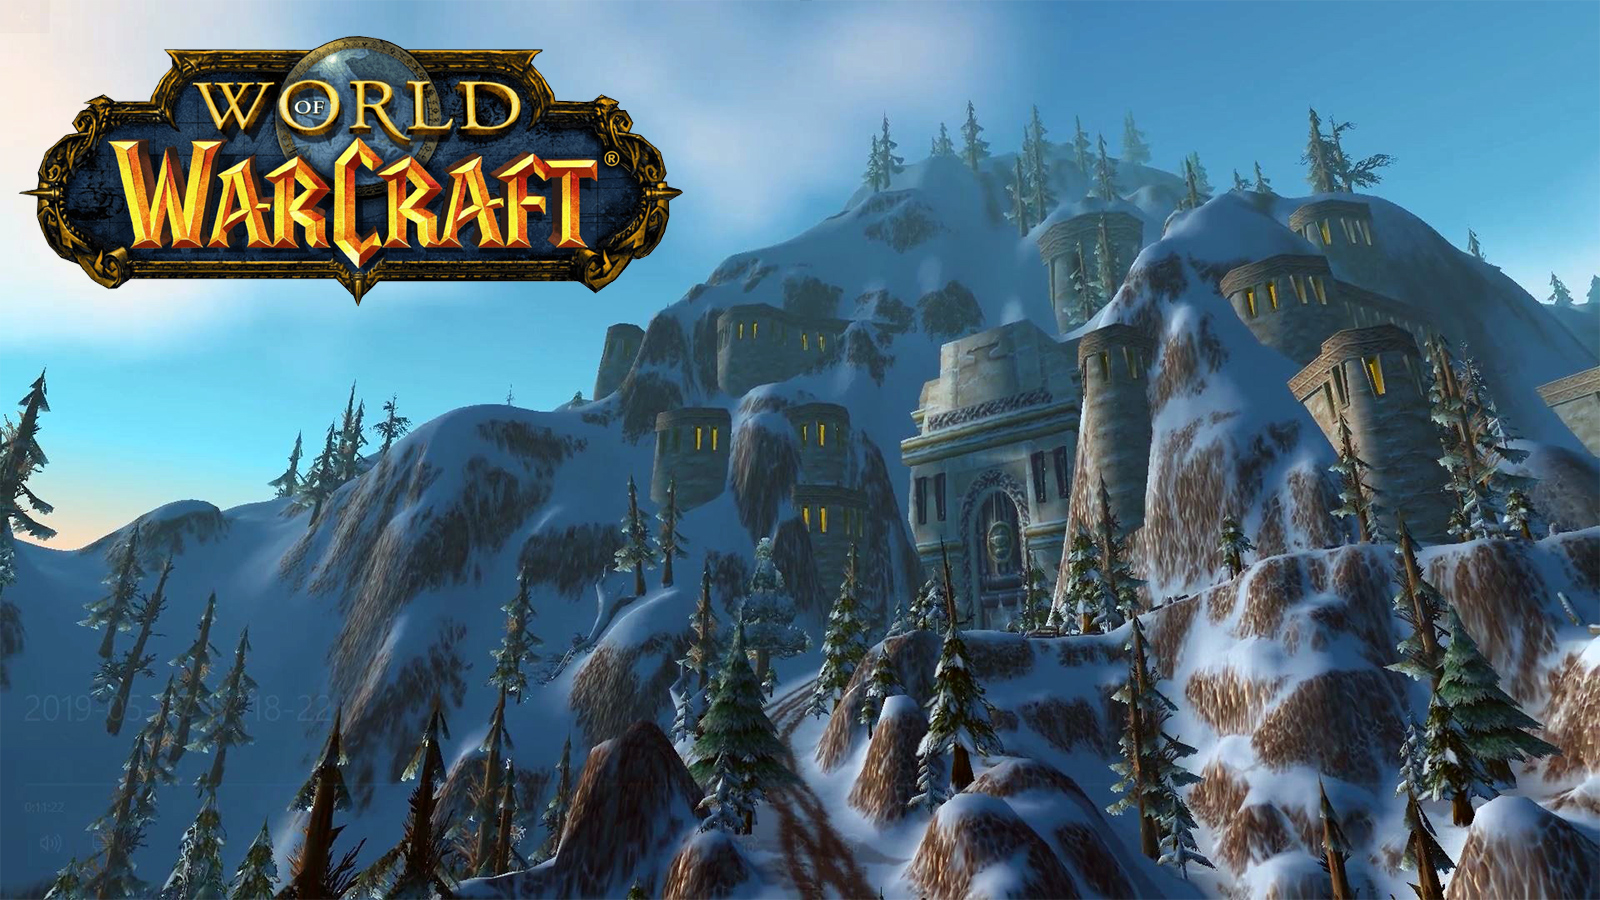 World of Warcraft 16th Anniversary event